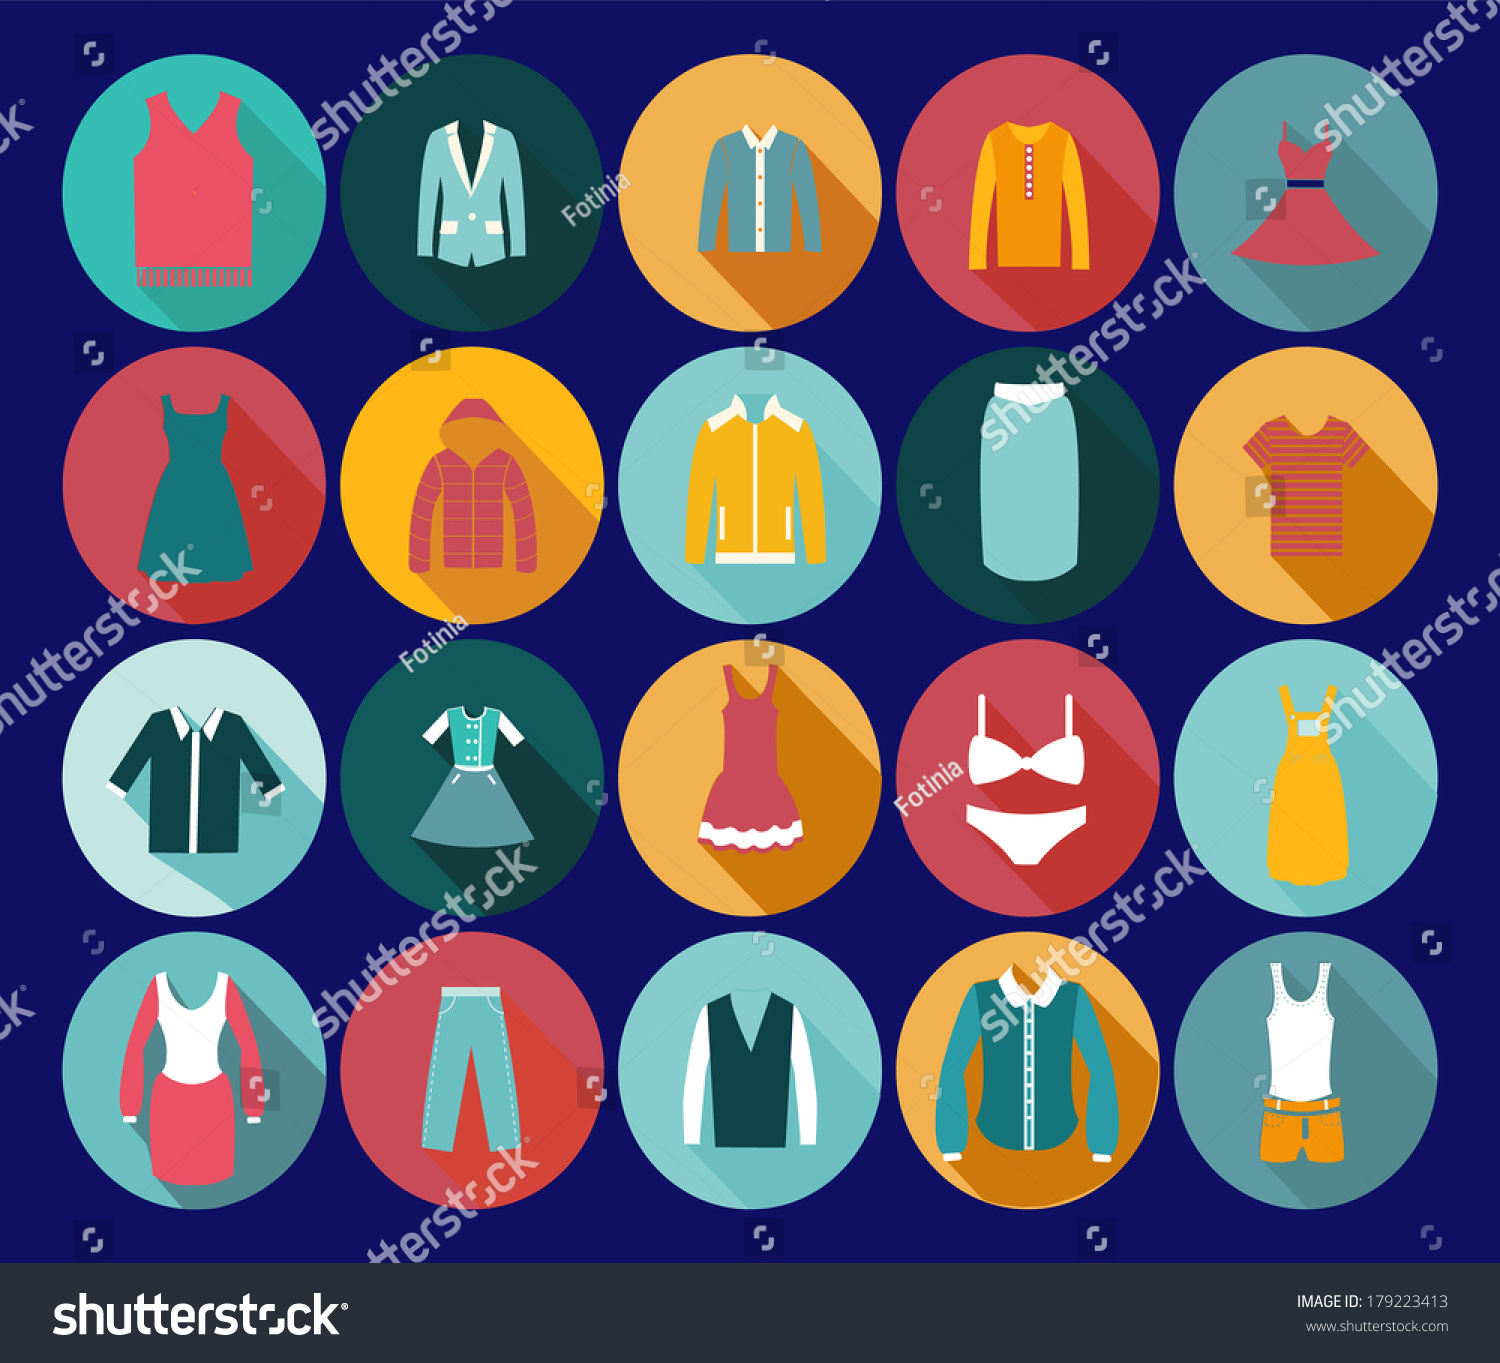 Vintage Clothing Icons Illustration Department Store Stock Vector 179223413 Shutterstock